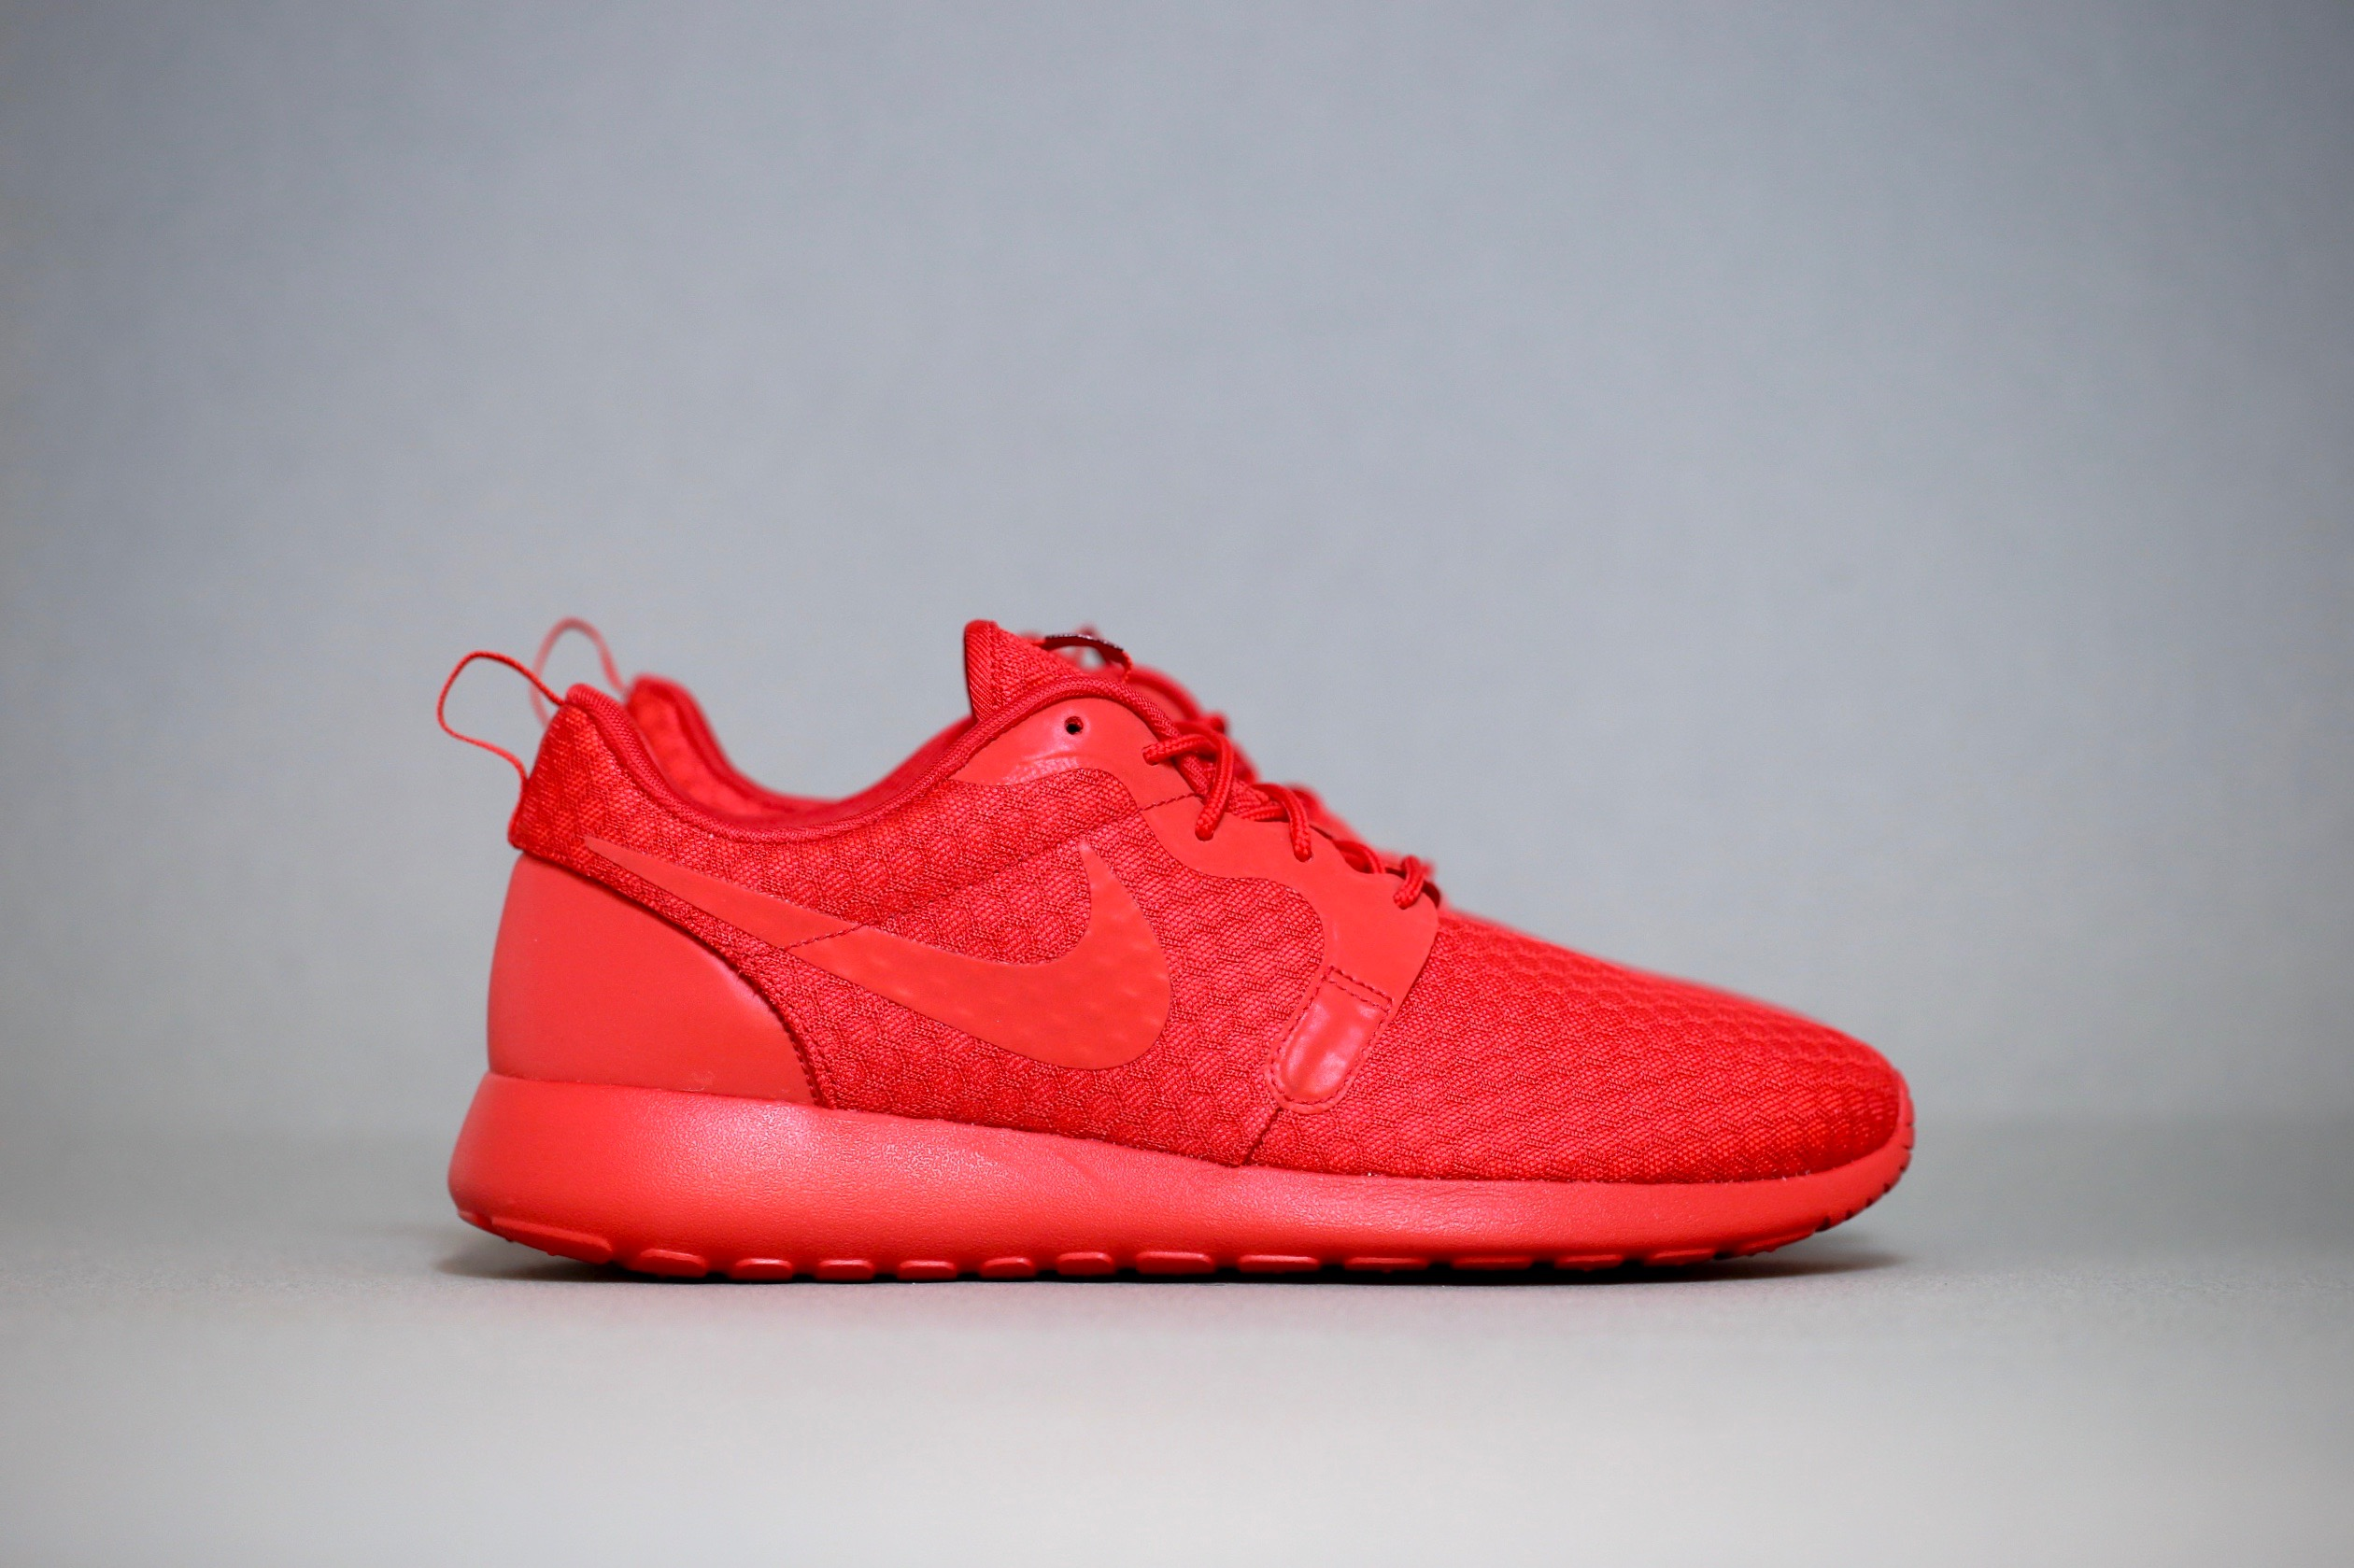 big sale cc574 7b81a Nike Roshe One Hyperfuse - University Red / University Red / Black